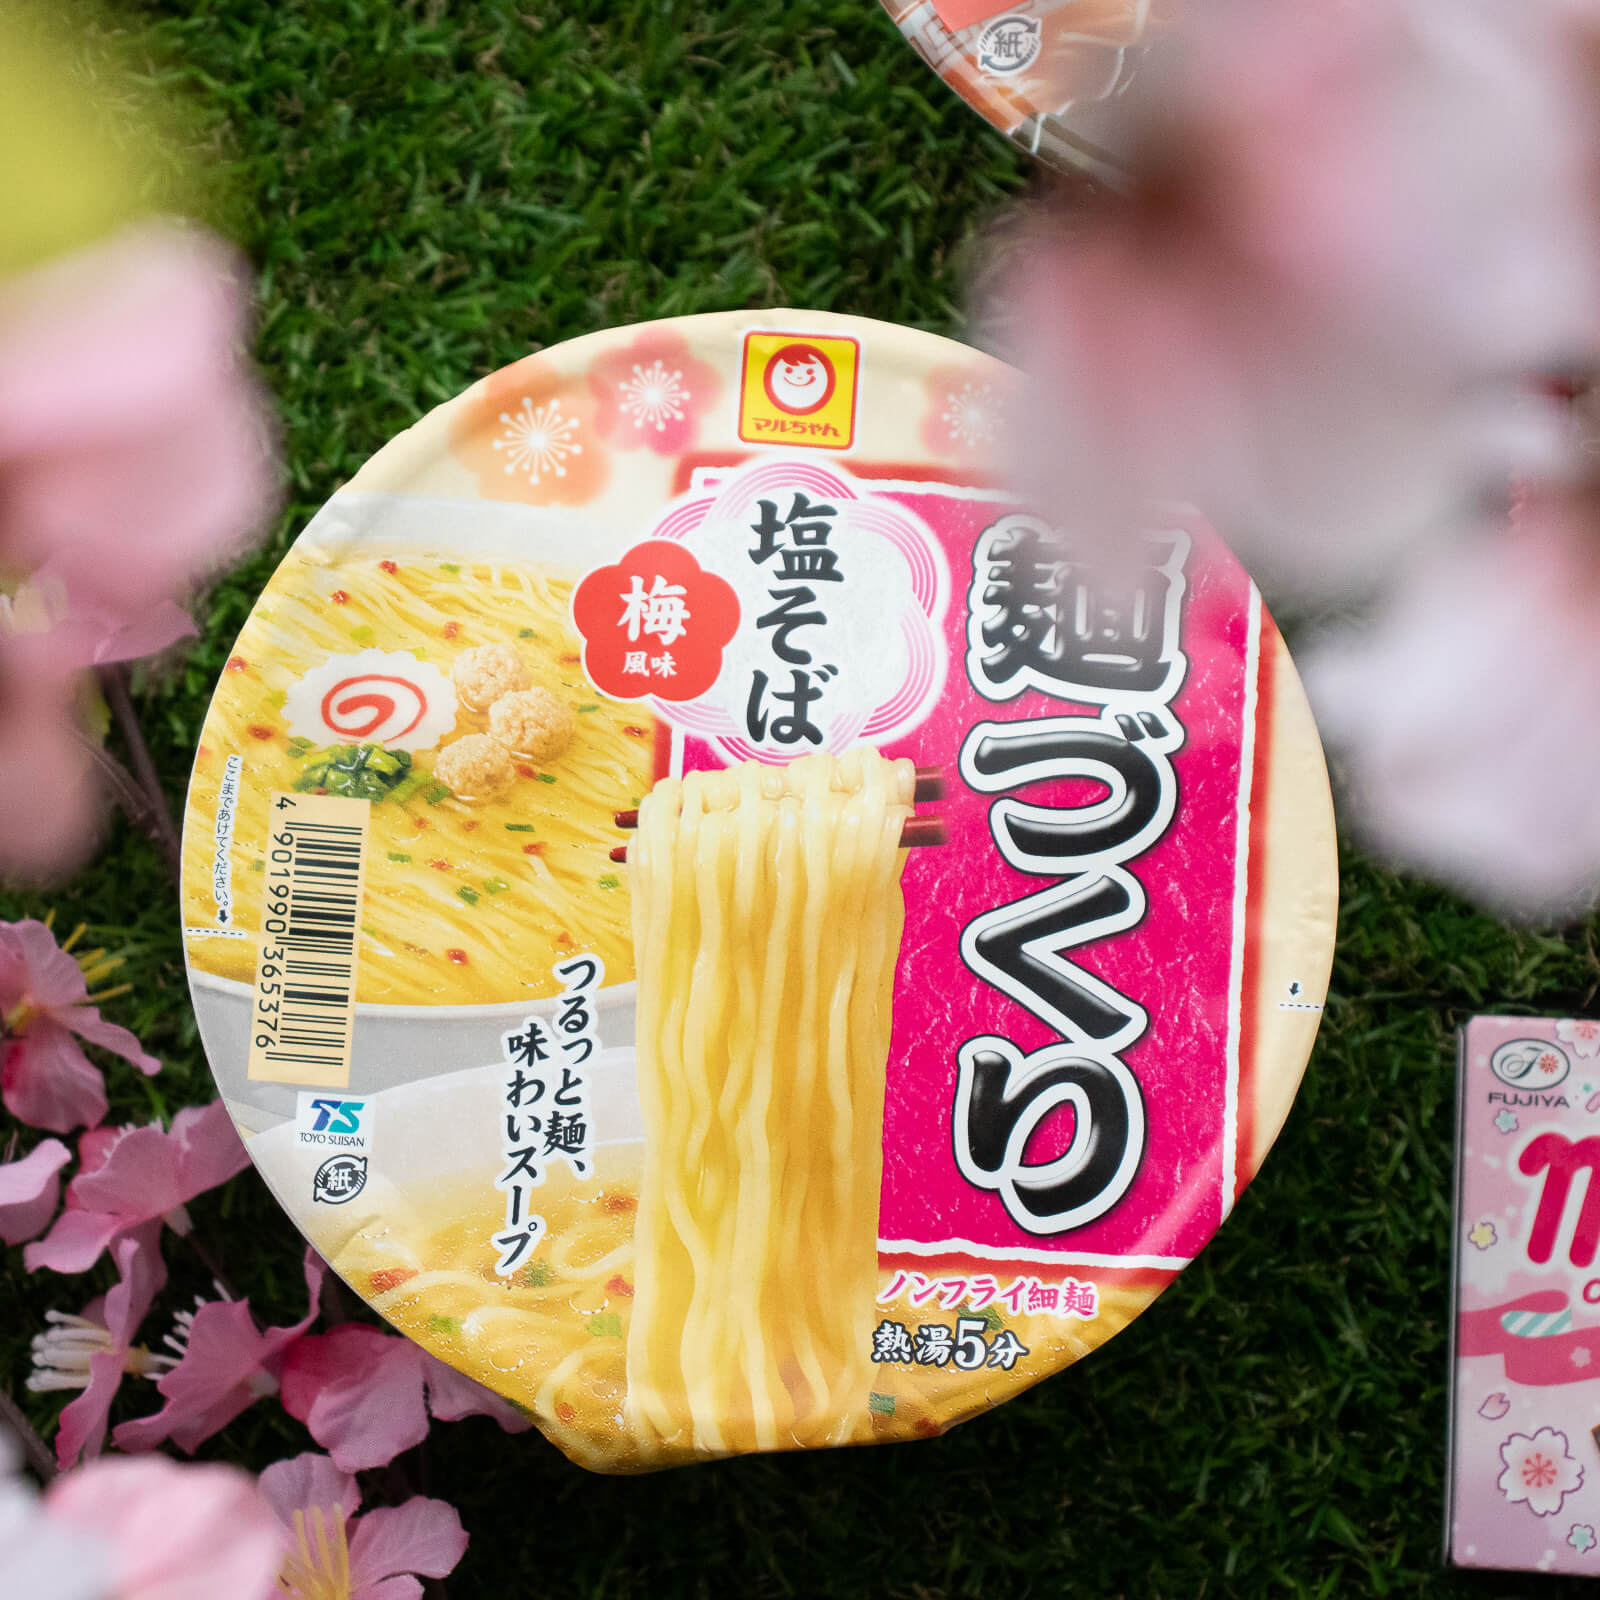 Ume Shio Soba, included in Sweets & Ramen Mix Pack